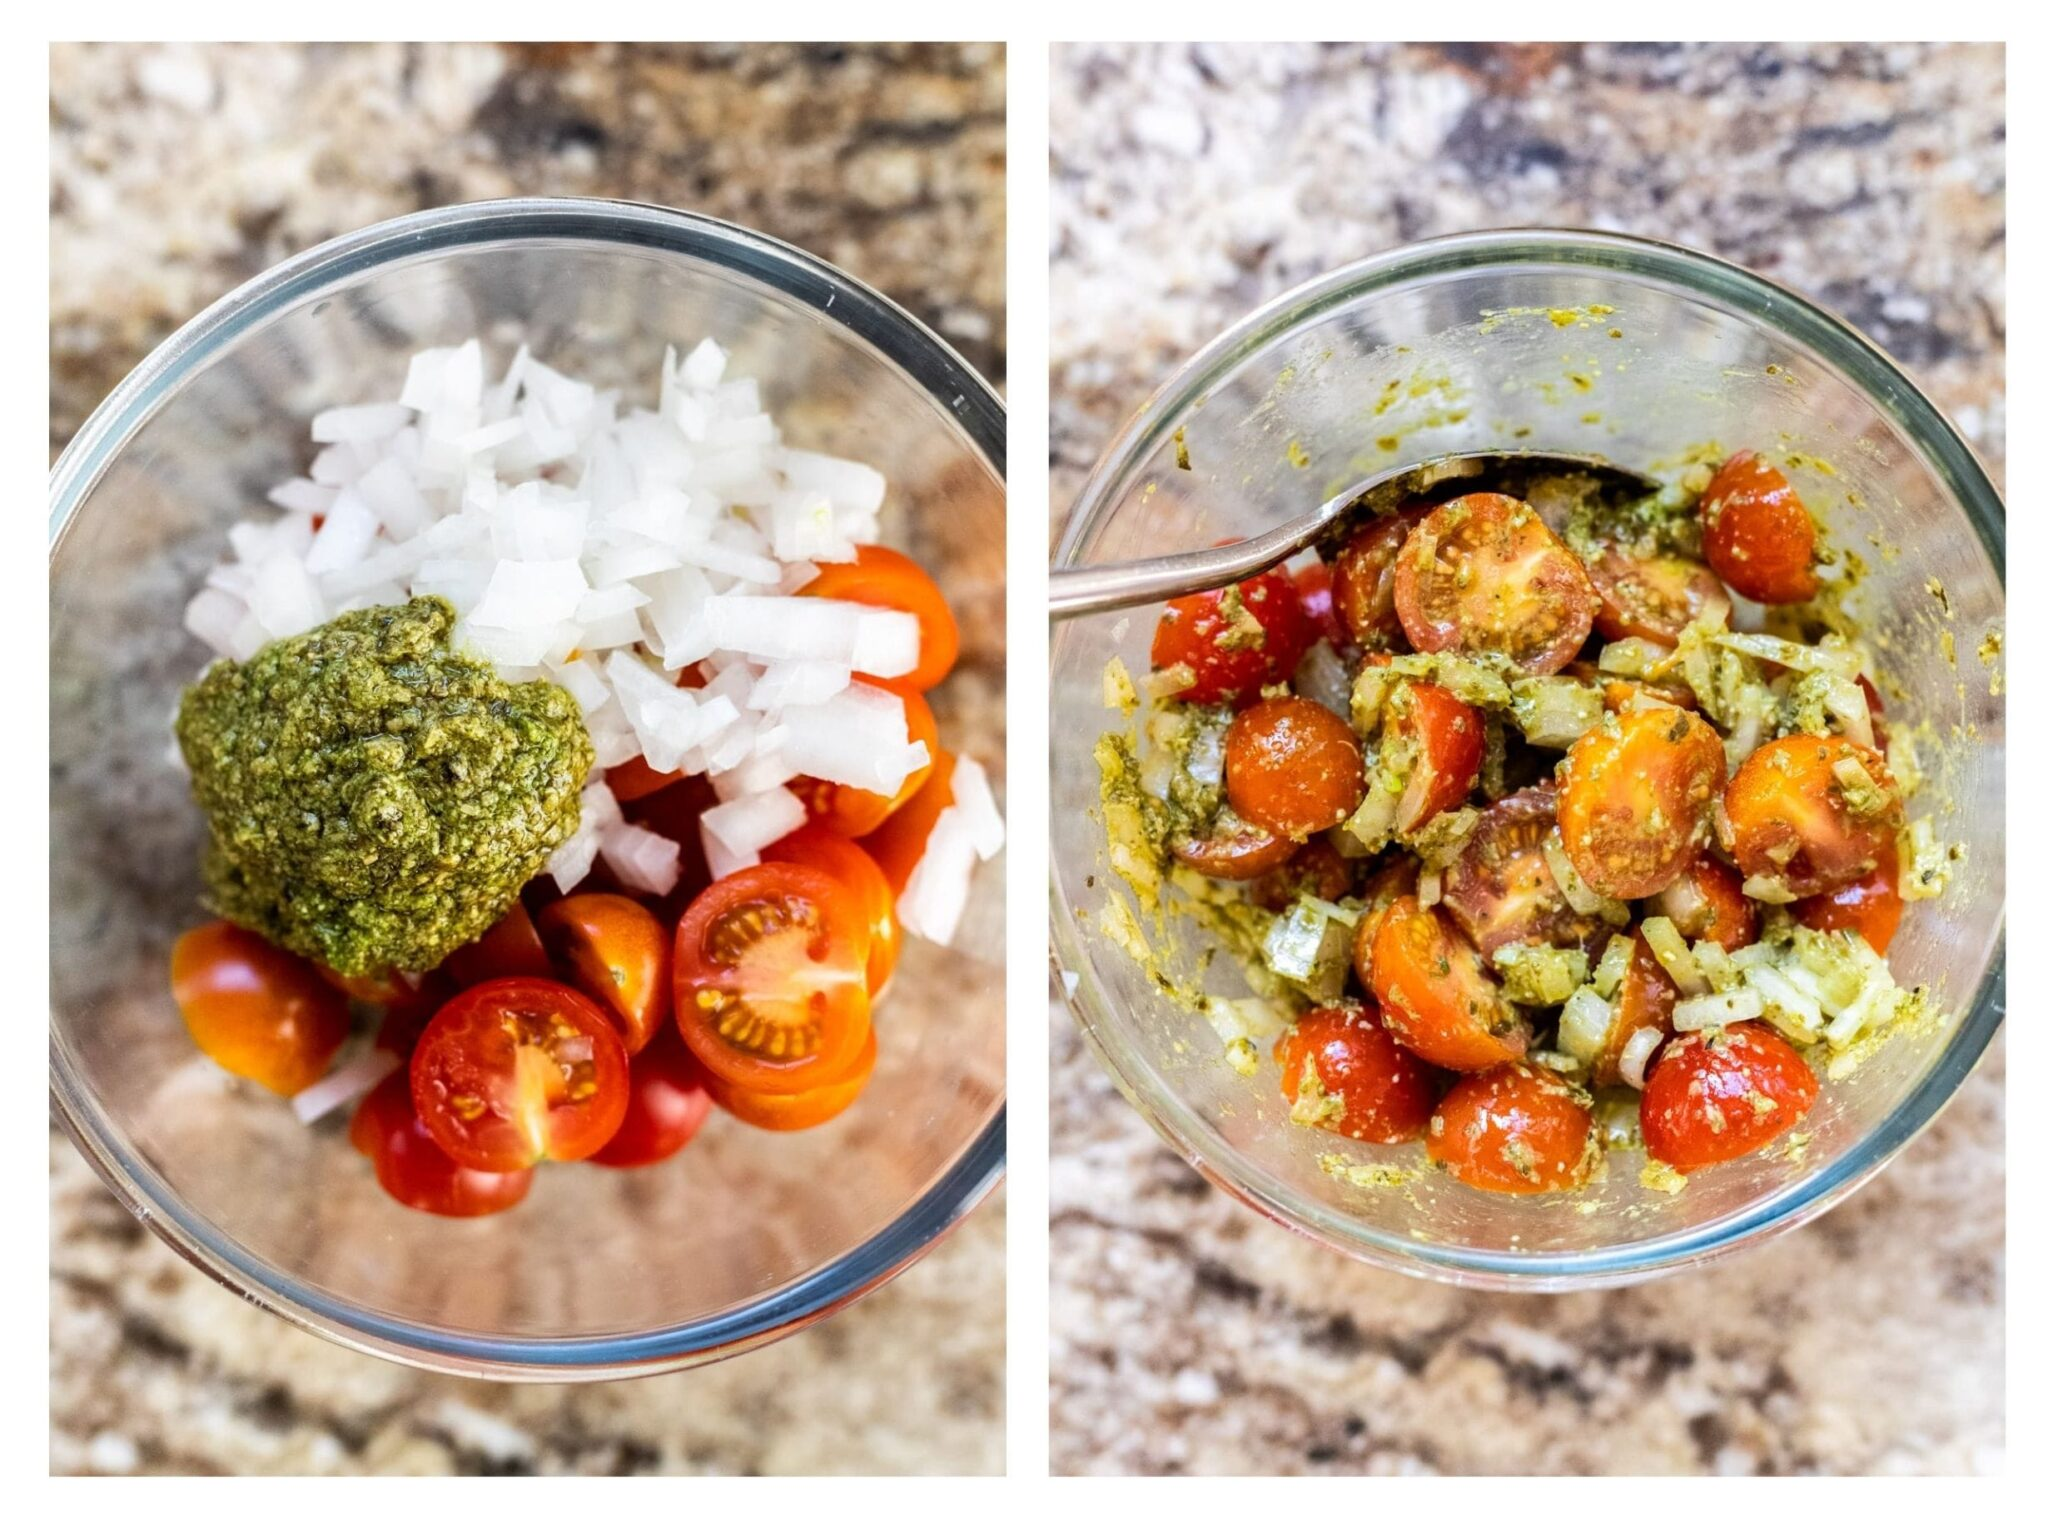 A photo collage of cherry tomato sauce ingredients in a bowl and the sauce ingredients mixed in a bowl.